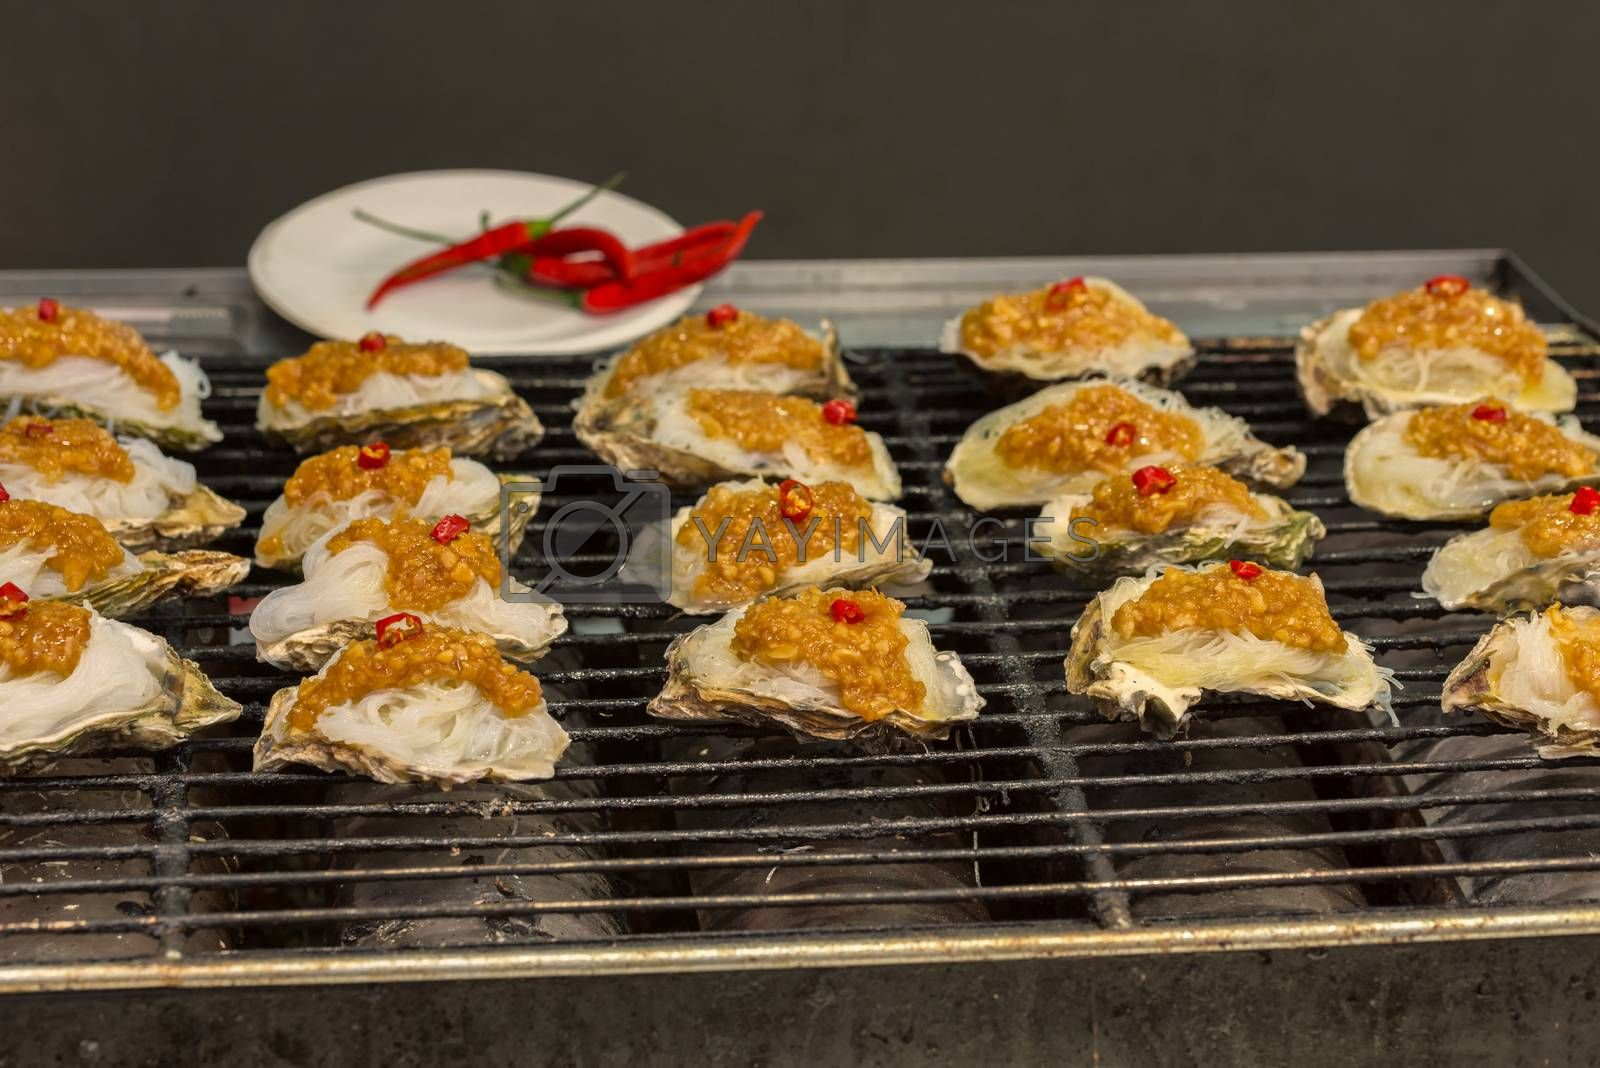 Street food asia. Grilled seafood. Oysters on the grill